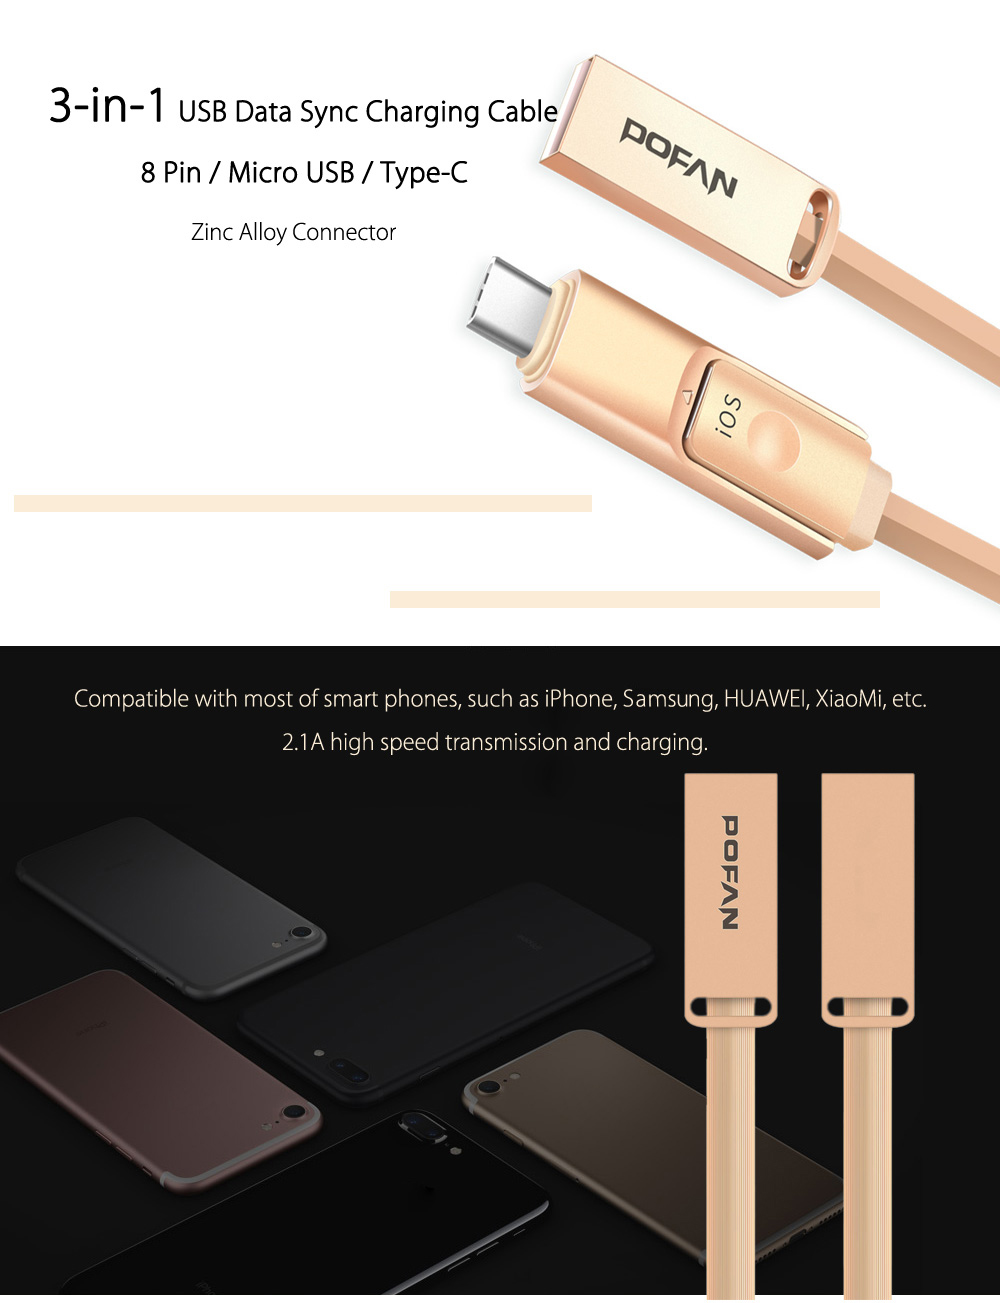 POFAN Zinc Alloy Housing Type-C / Micro USB / 8 Pin Combo Data Transfer and Charging Cable PVC Anti-twining Cord - 120cm